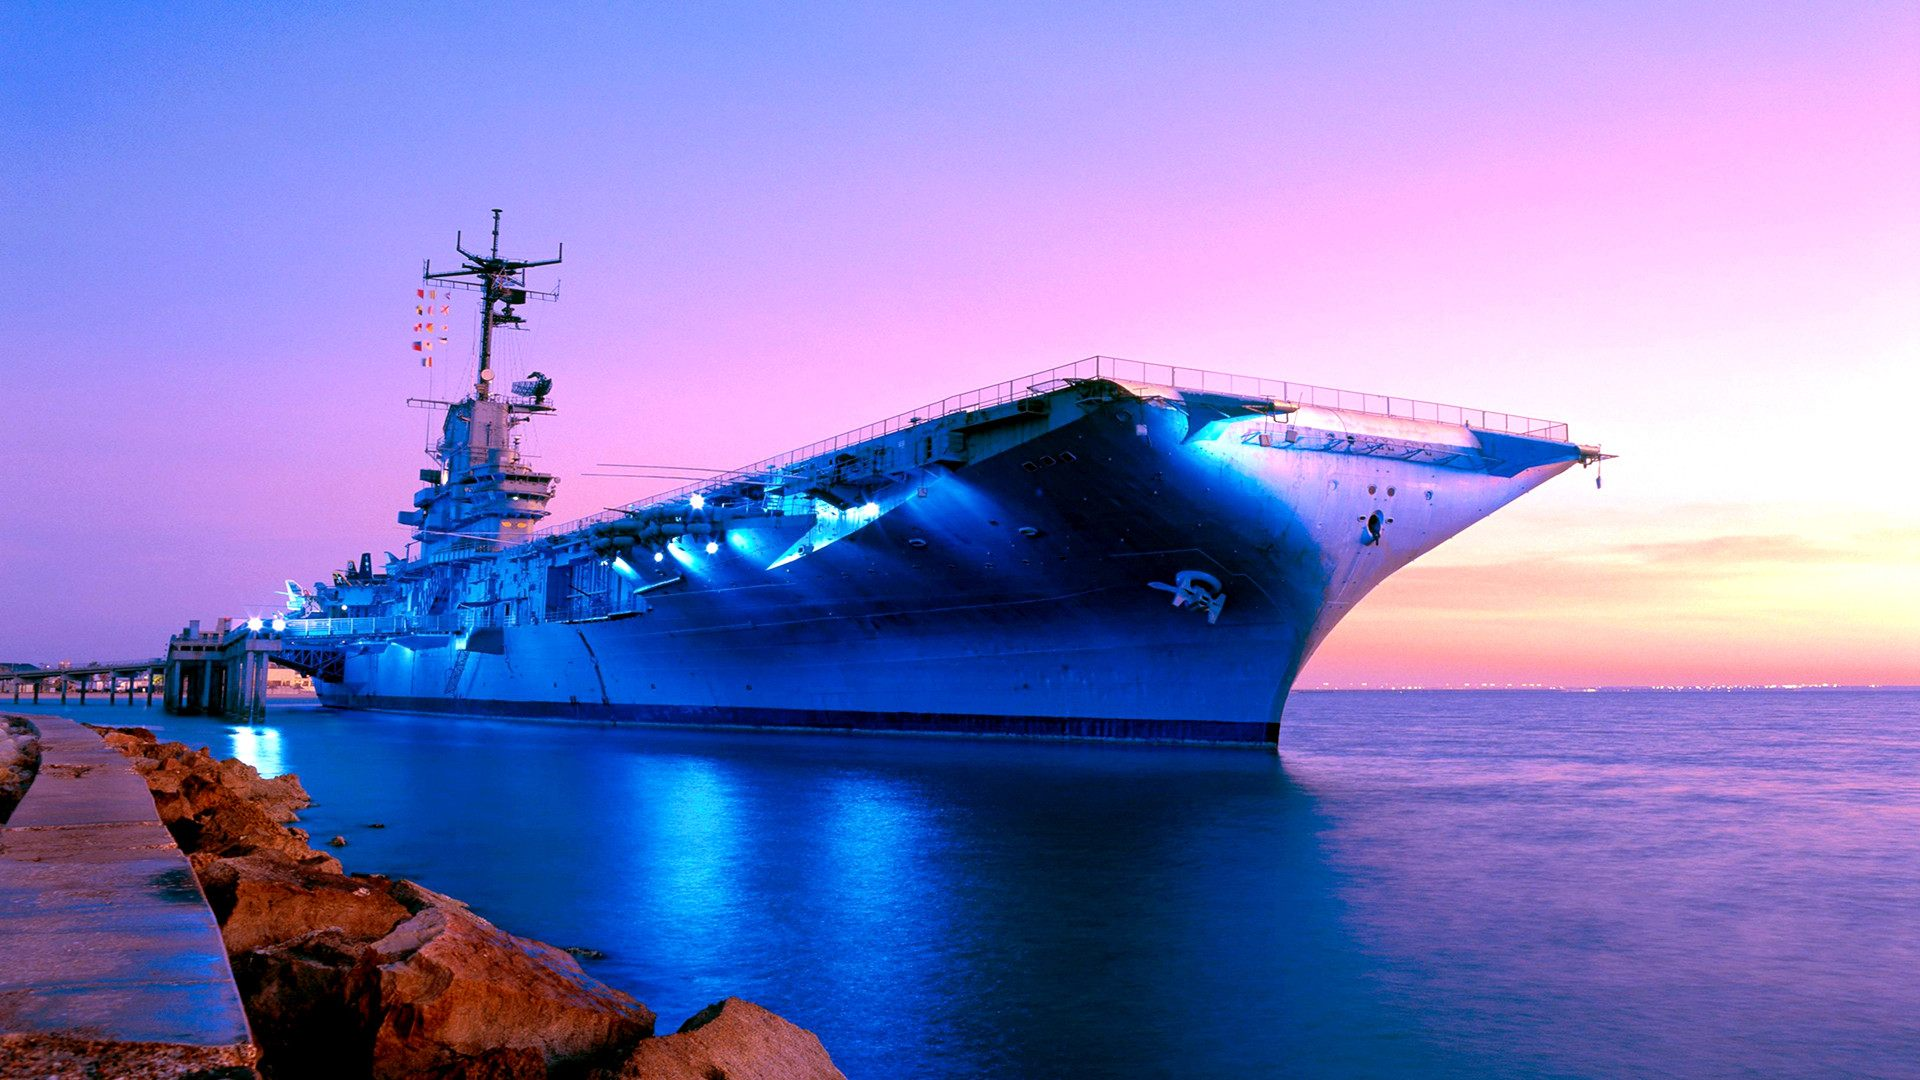 navy-ship-wallpaper